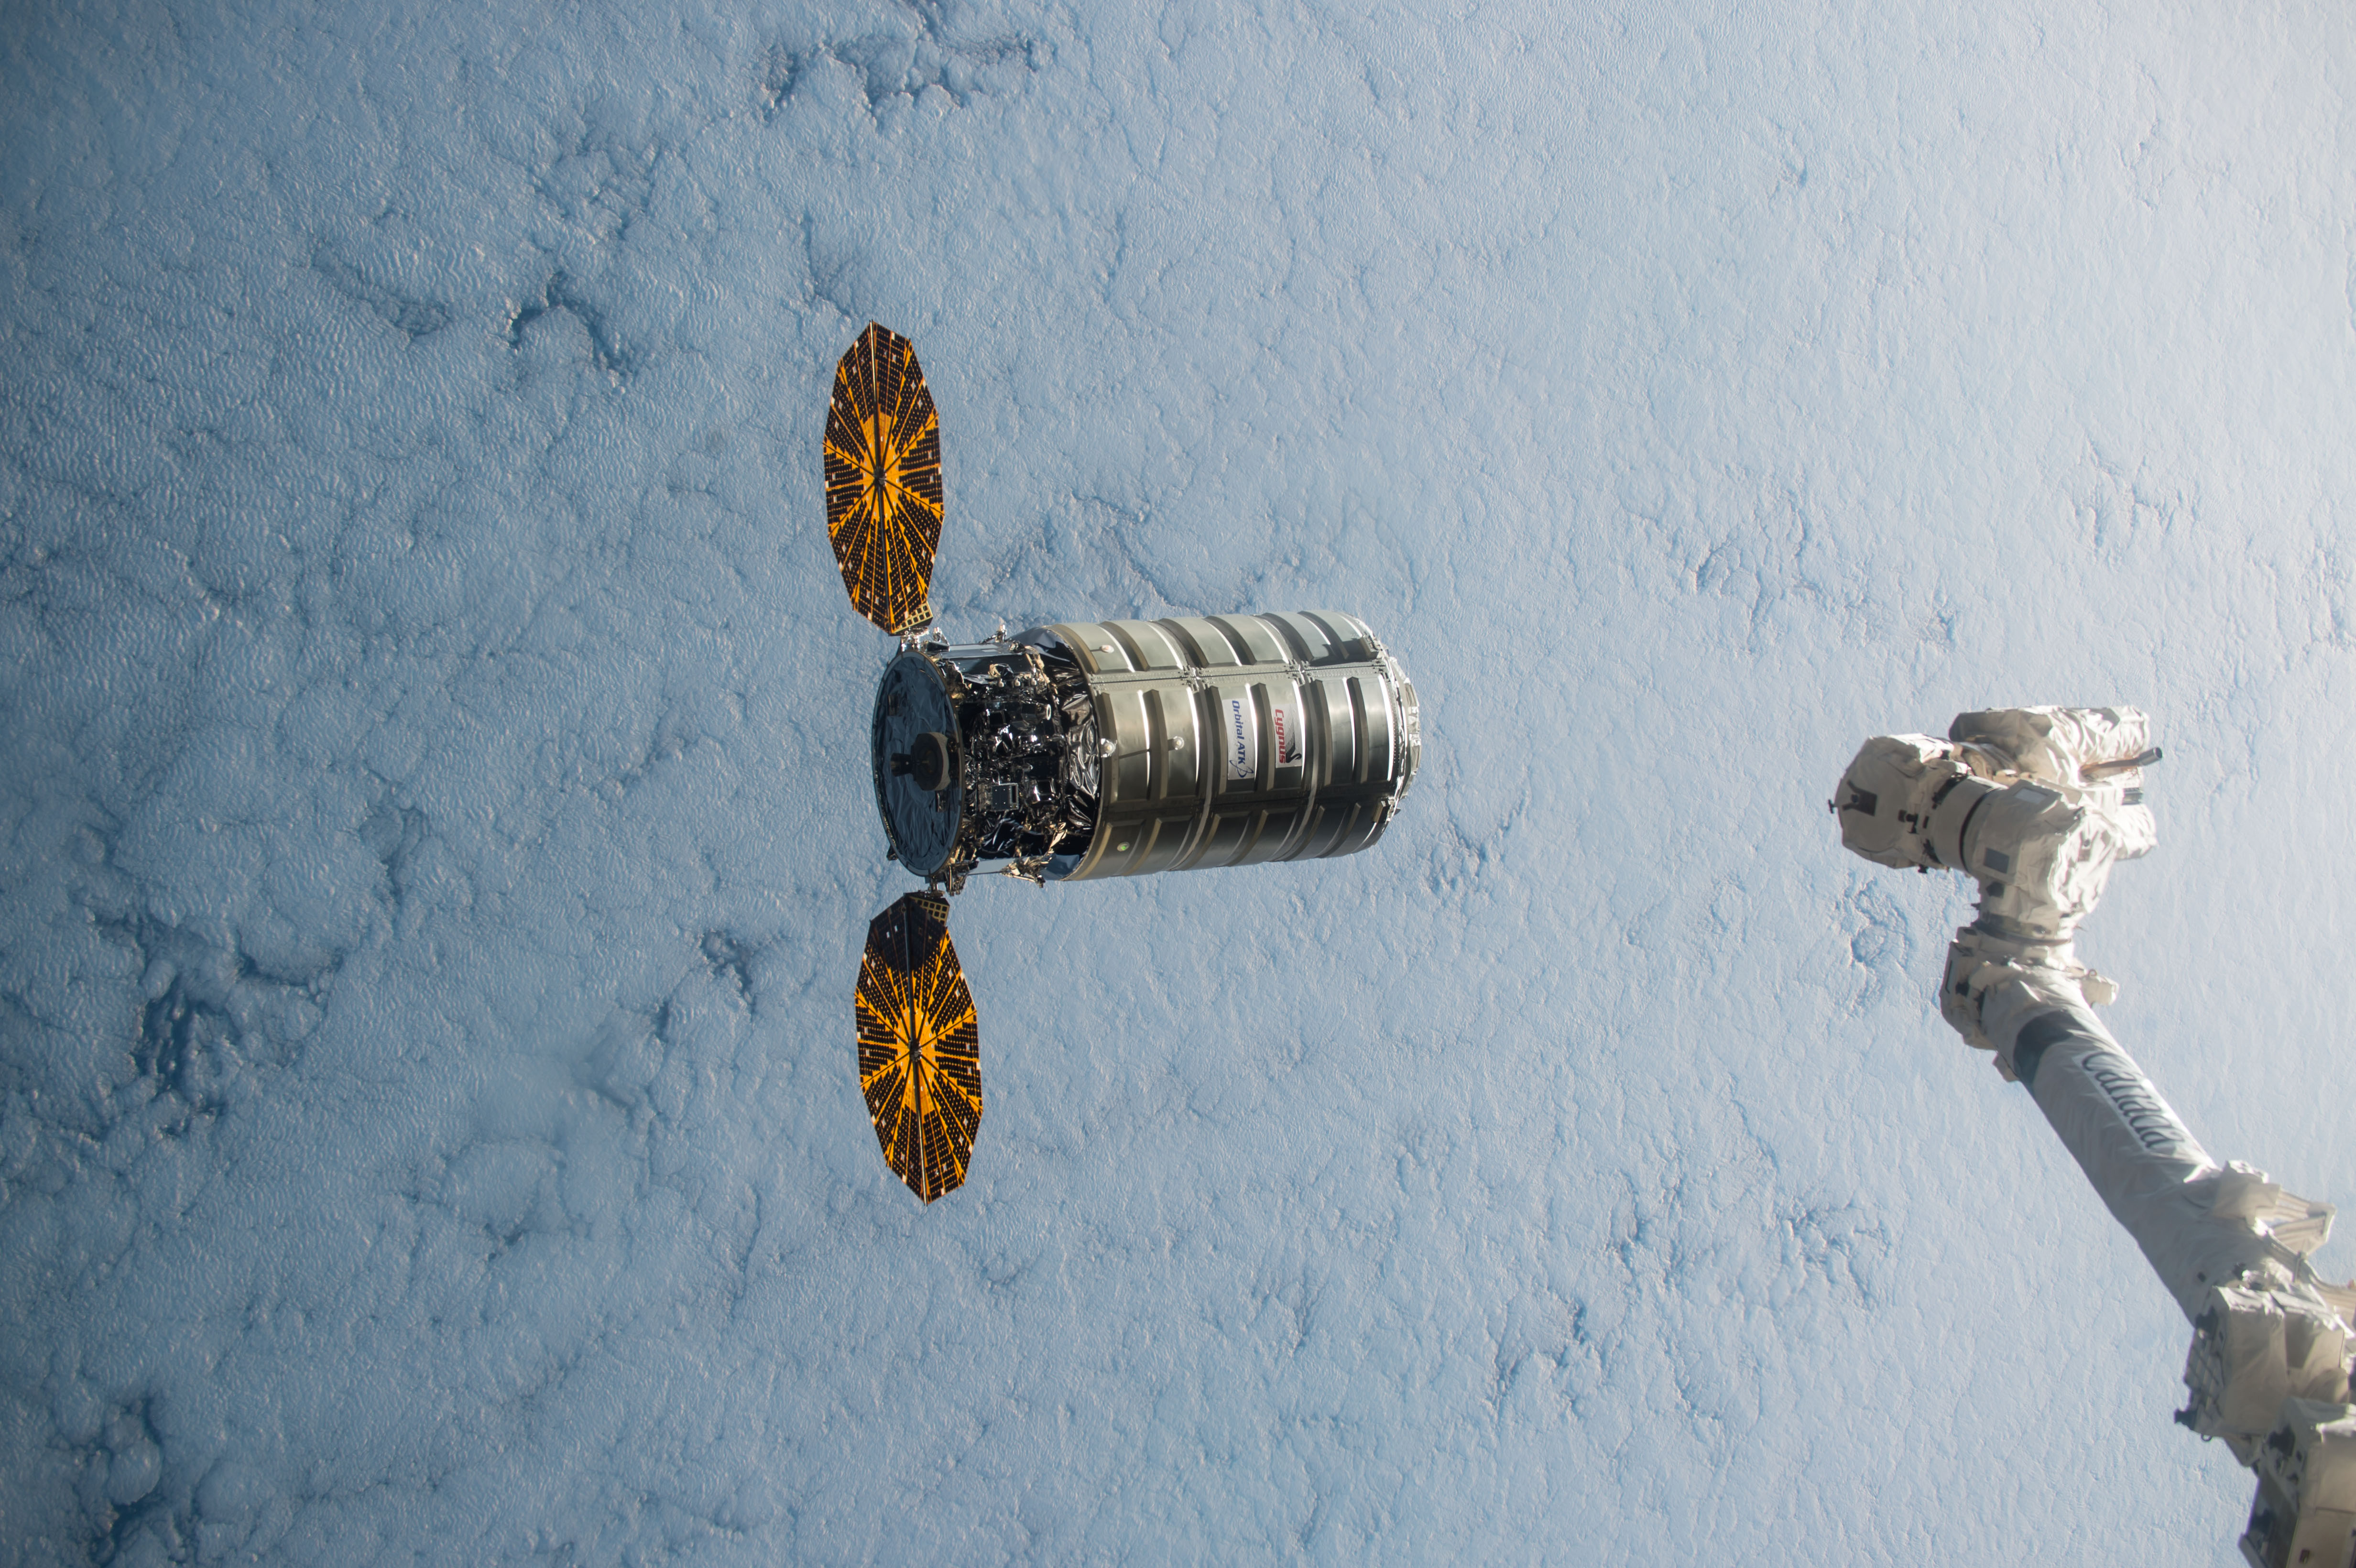 The Cygnus spacecraft NASA will be using for the experimentation.